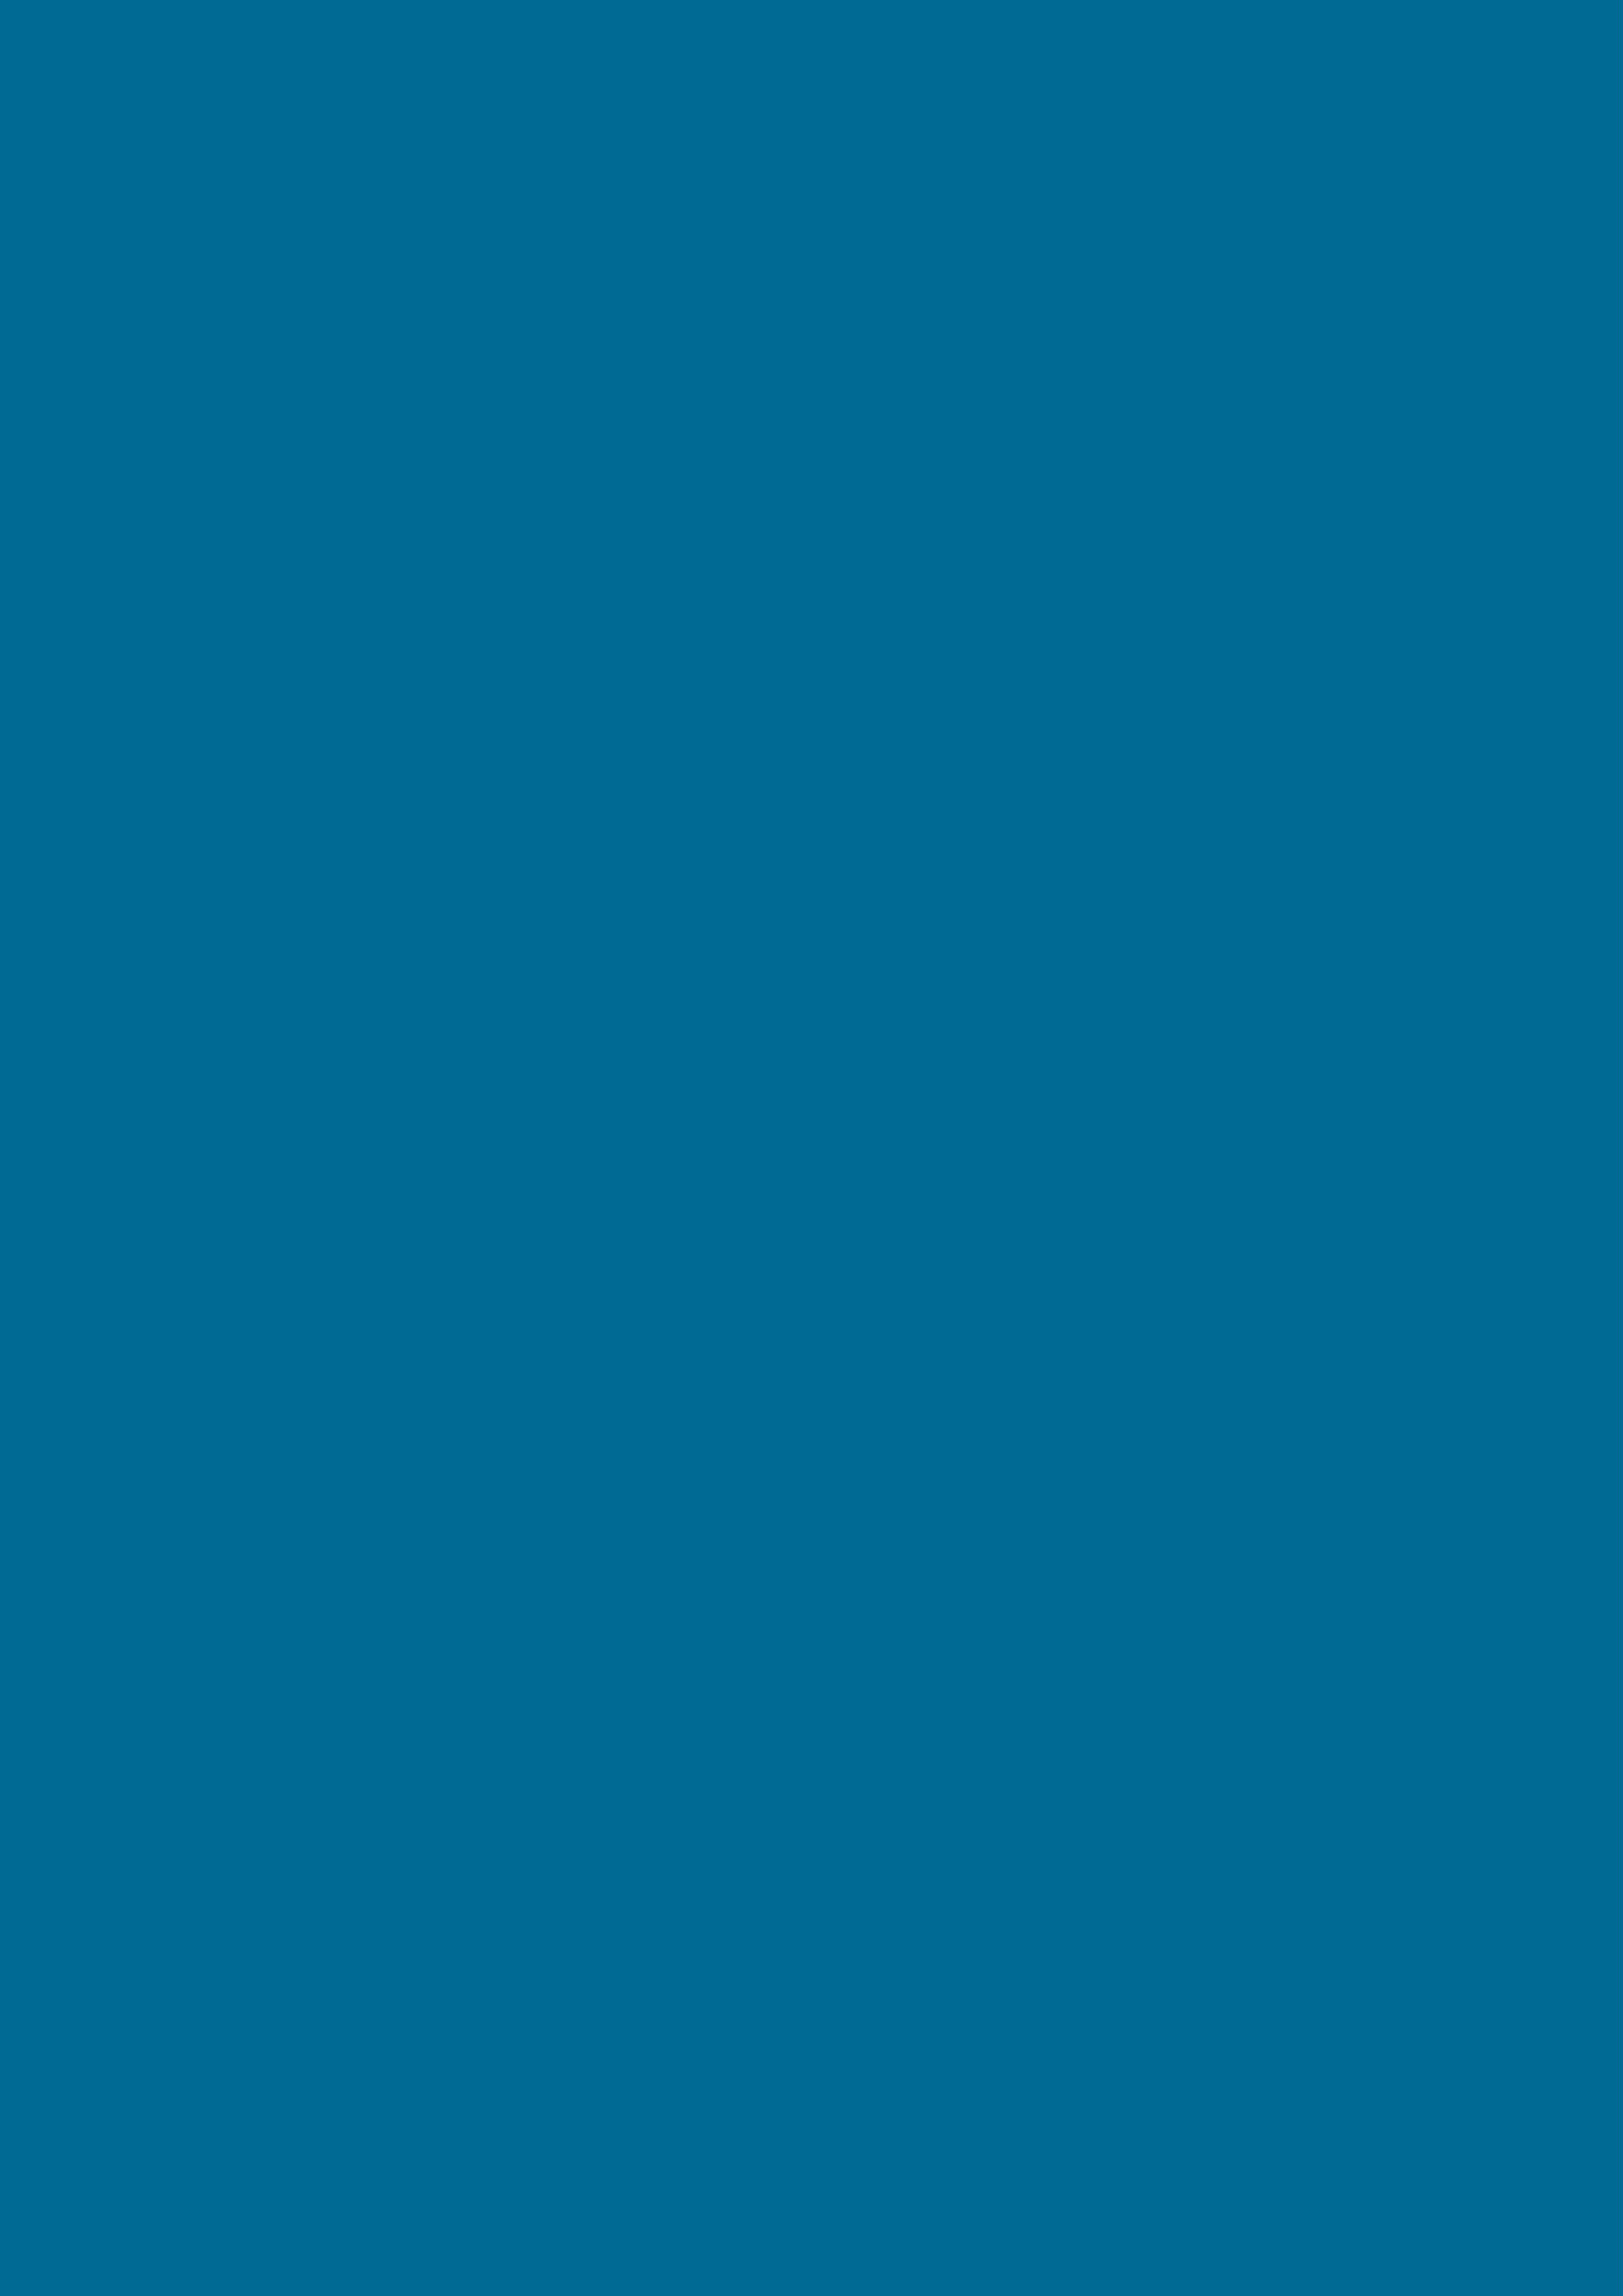 2480x3508 Sea Blue Solid Color Background